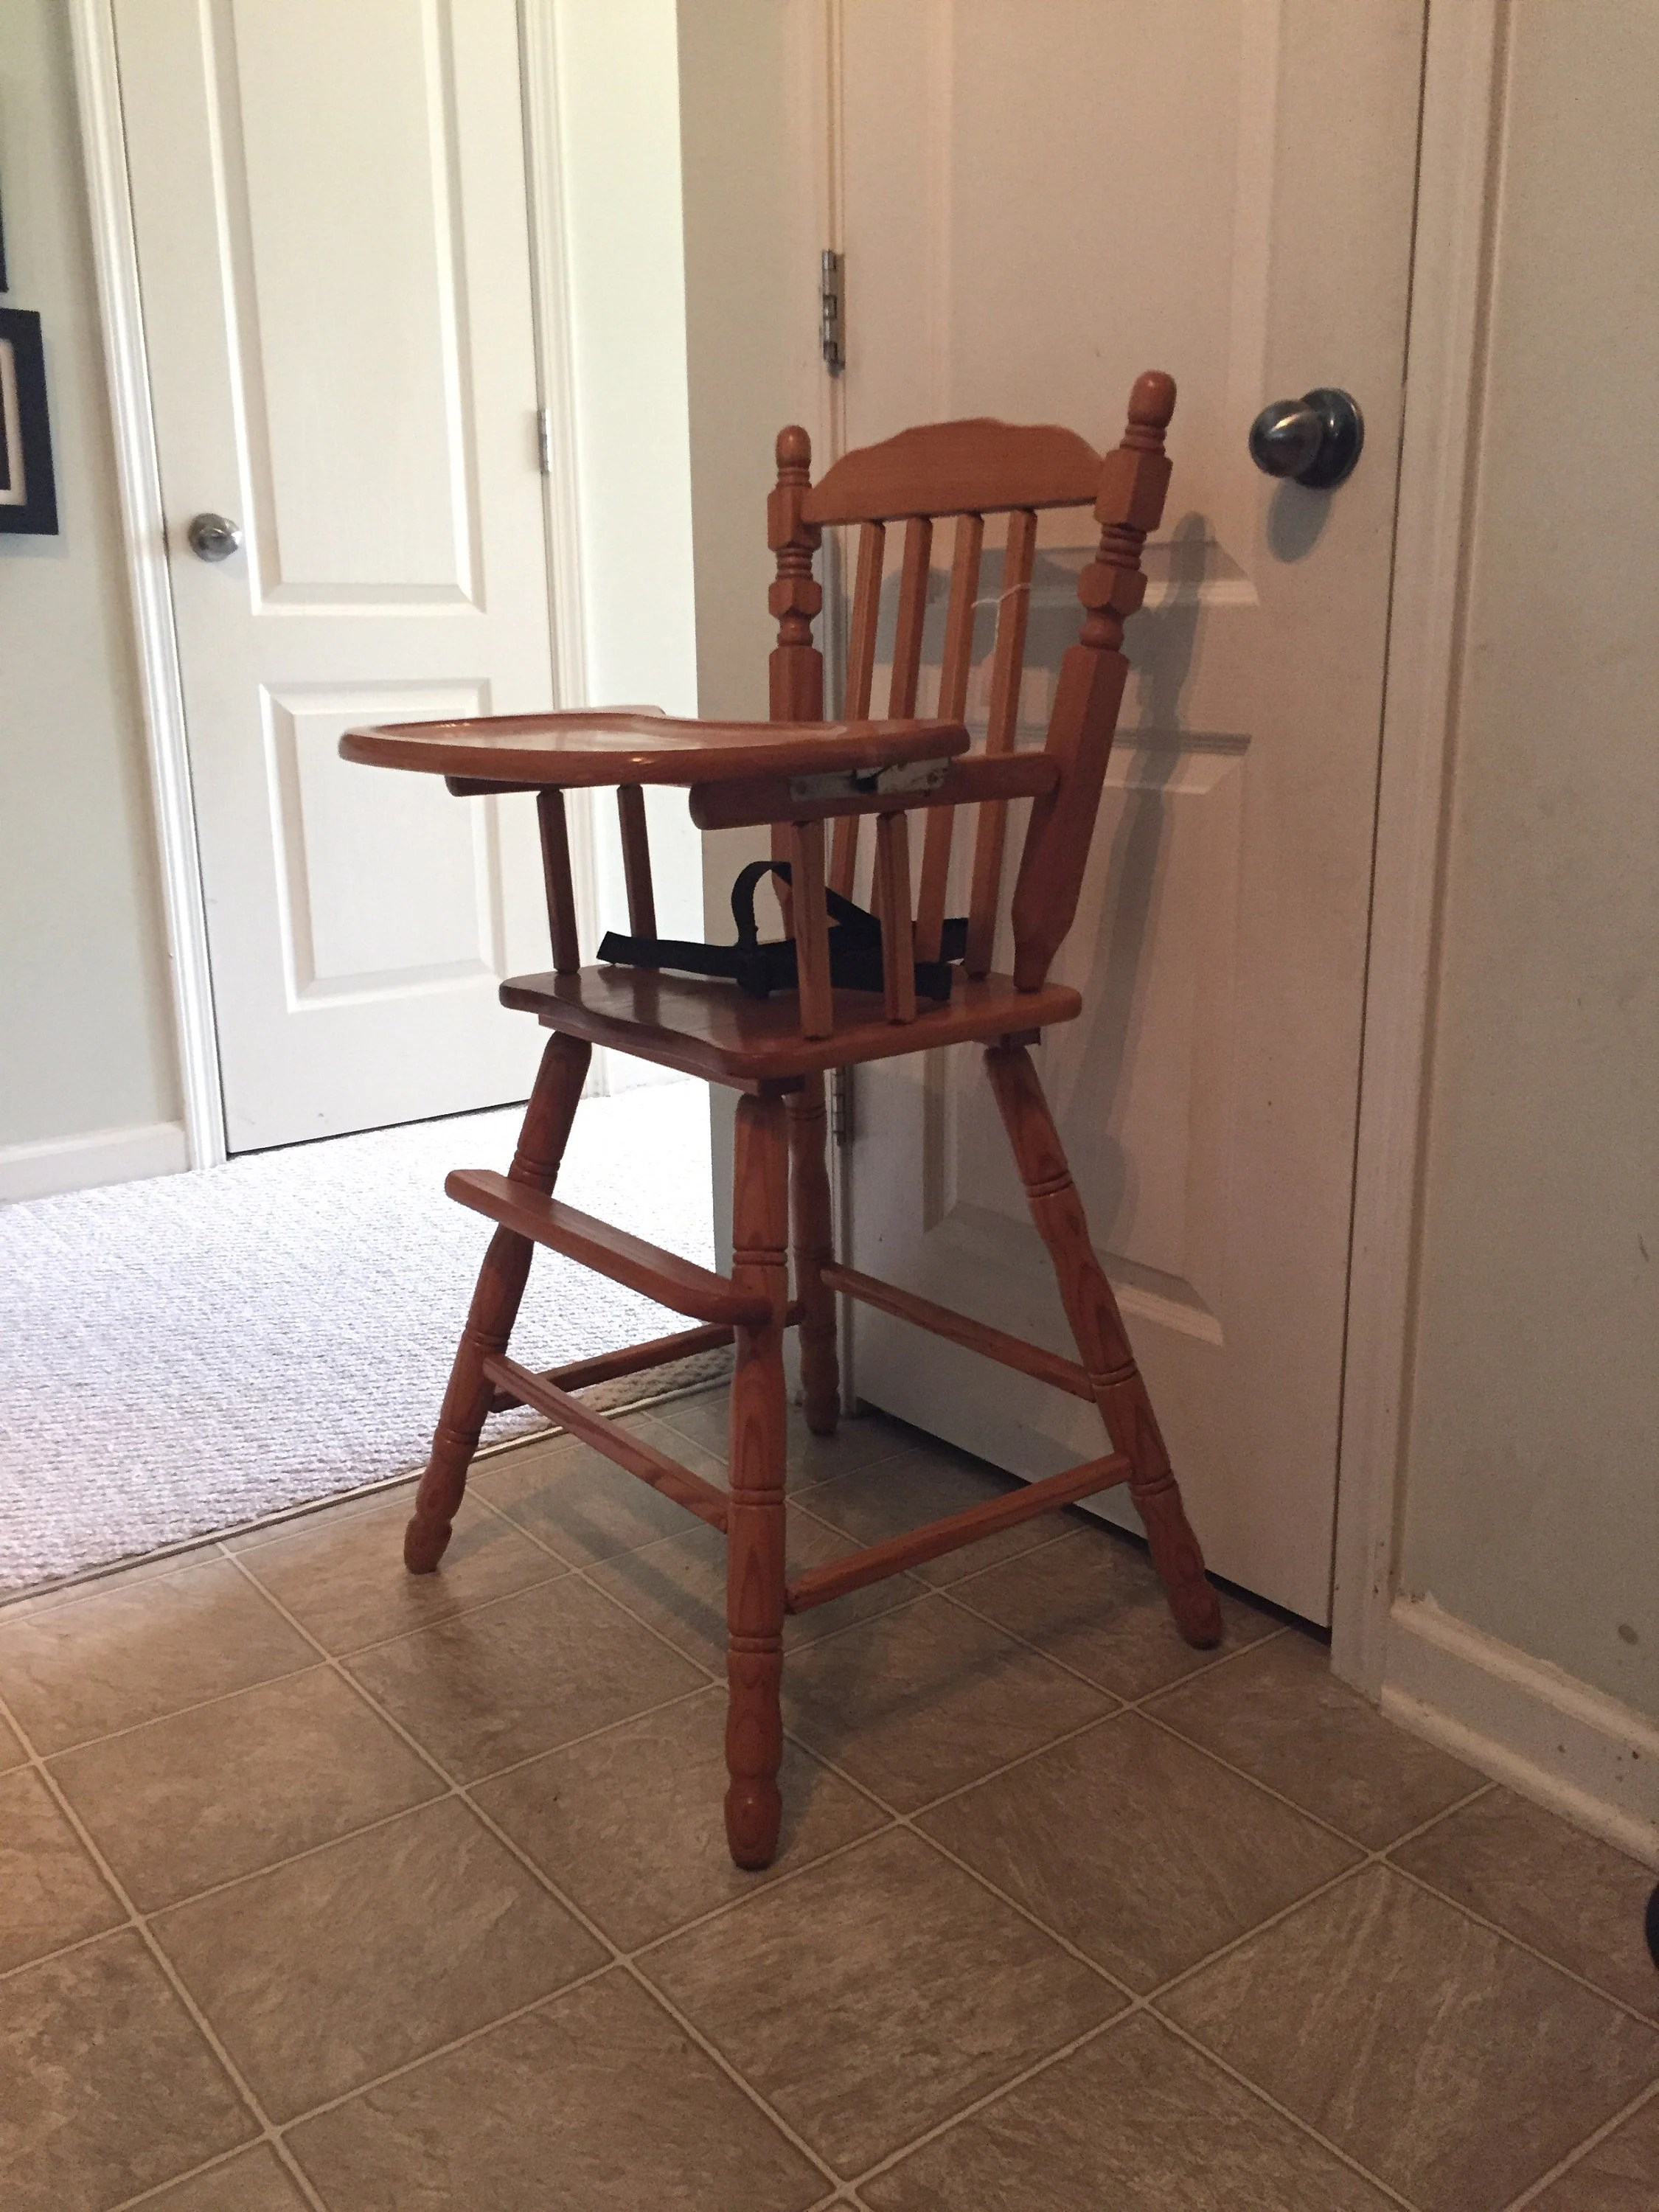 antique high chairs redo sling patio vintage wooden chair jenny lind etsy image 0